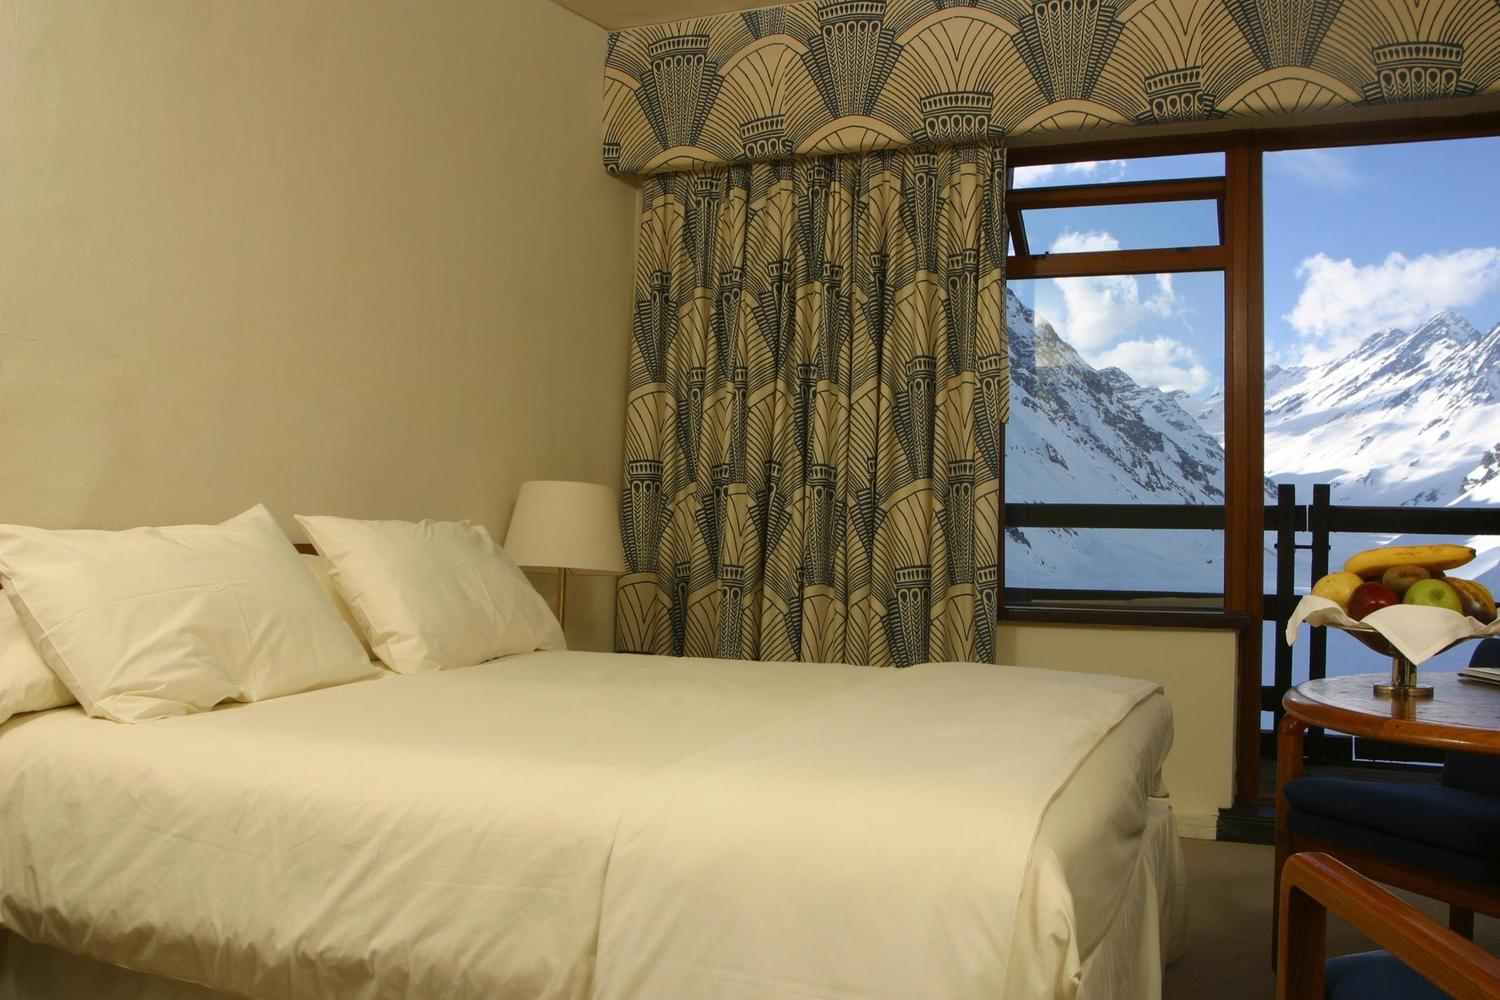 Room at the Gran Hotel Portillo, Chile